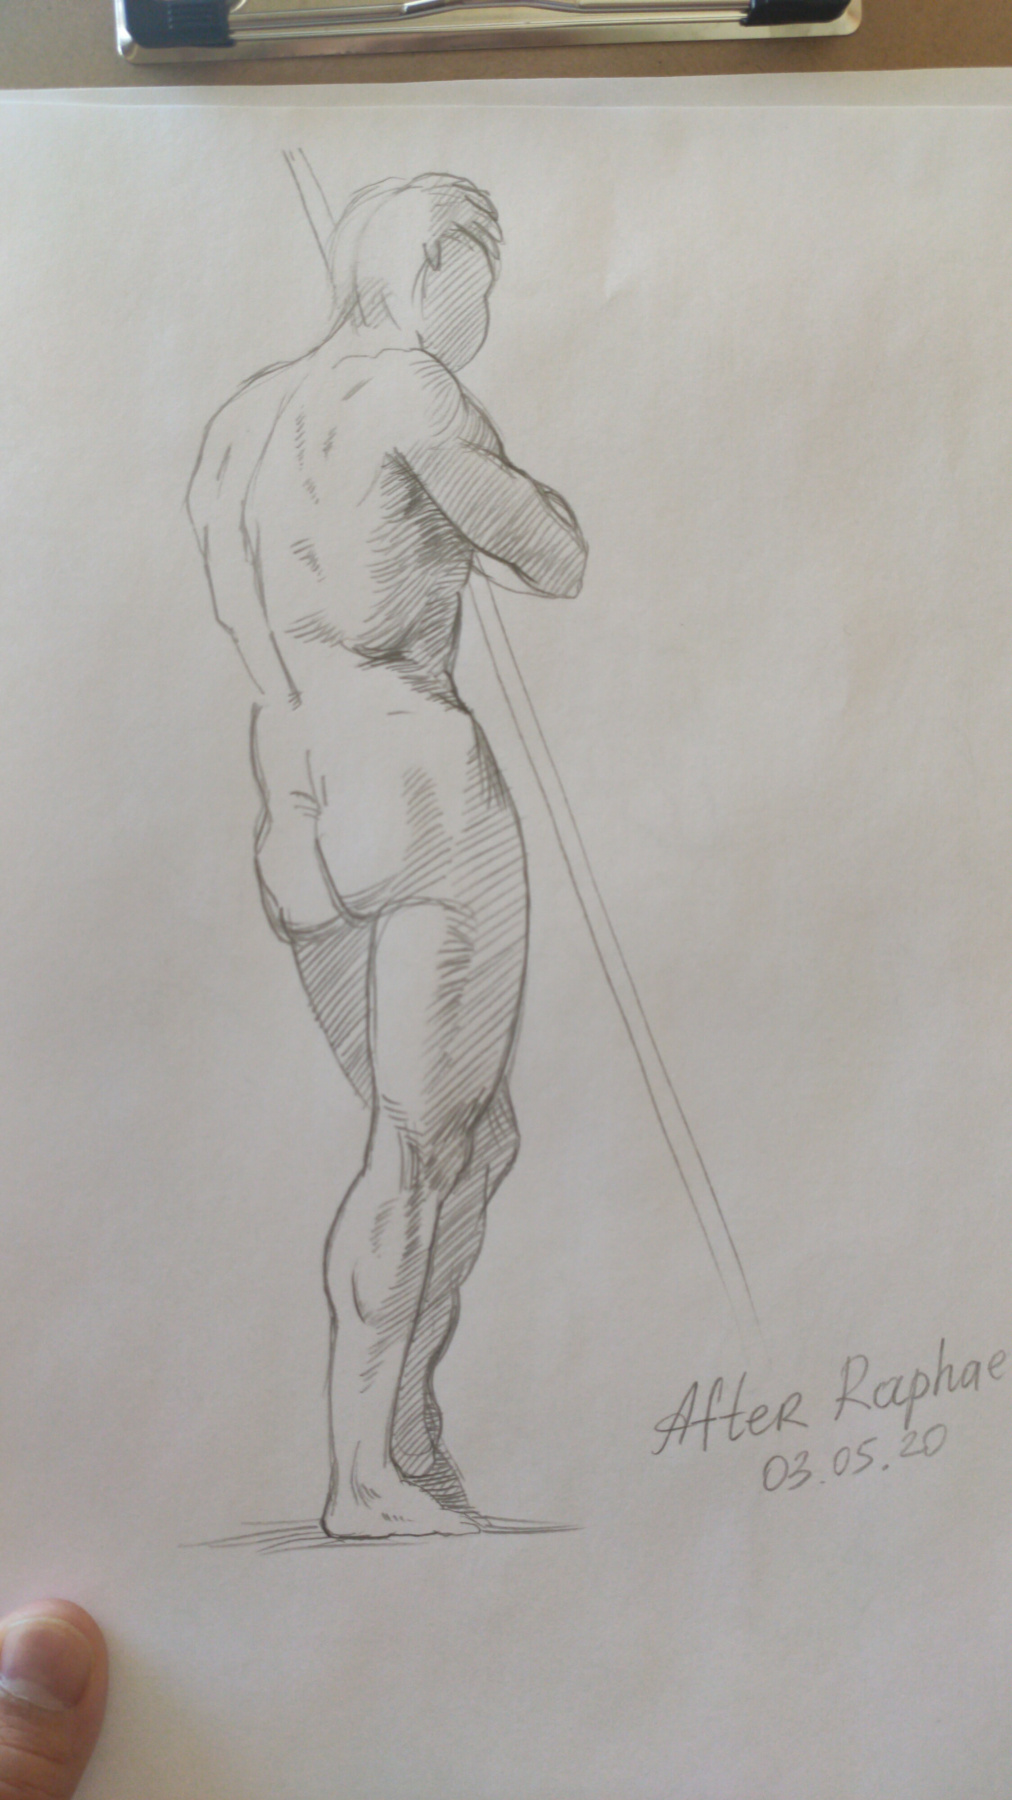 Architect Mendisabal. Copy from Raphael's drawing